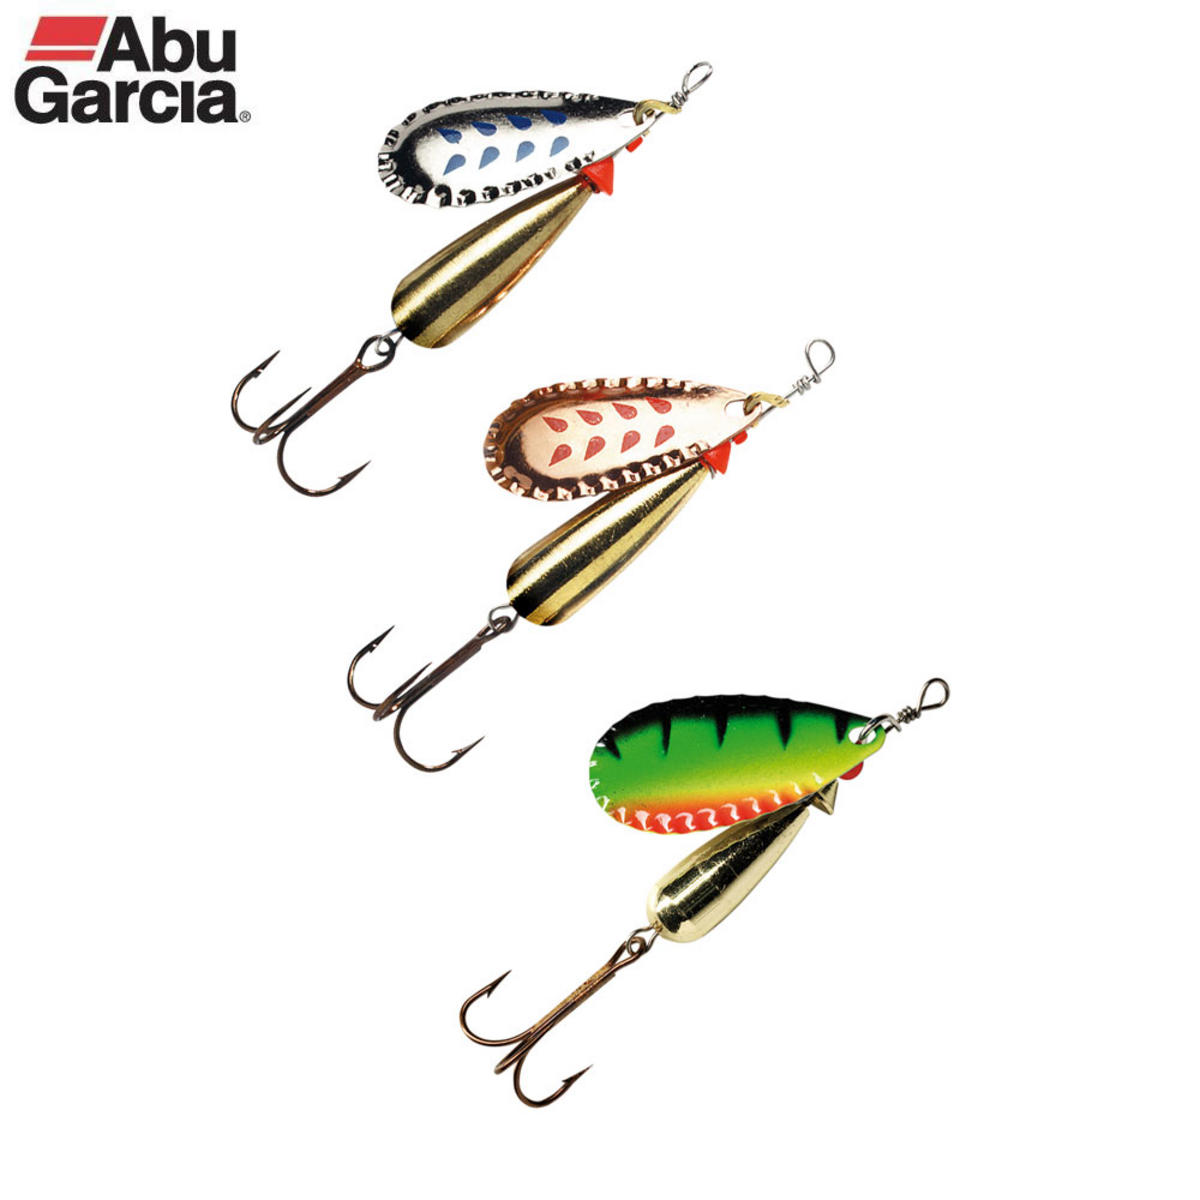 ABU GARCIA CLASSIC DROPPEN SPINNER LURES 8gm 3 PACK 1109916